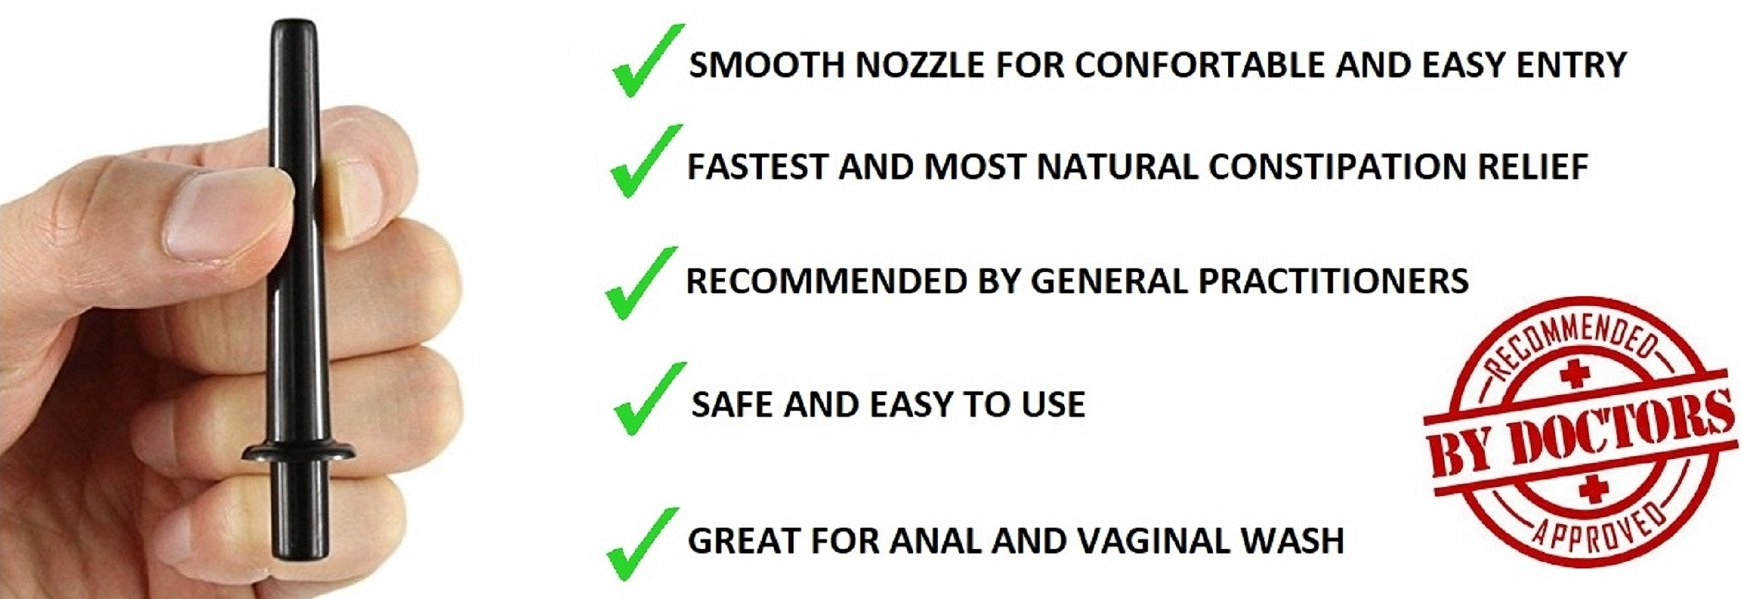 Premium Enema Bulb Douche Safe Comfortable Nozzle Anal Silicone Medical Enema Kit for Men Women FDA Certified Fast Constipation Relief